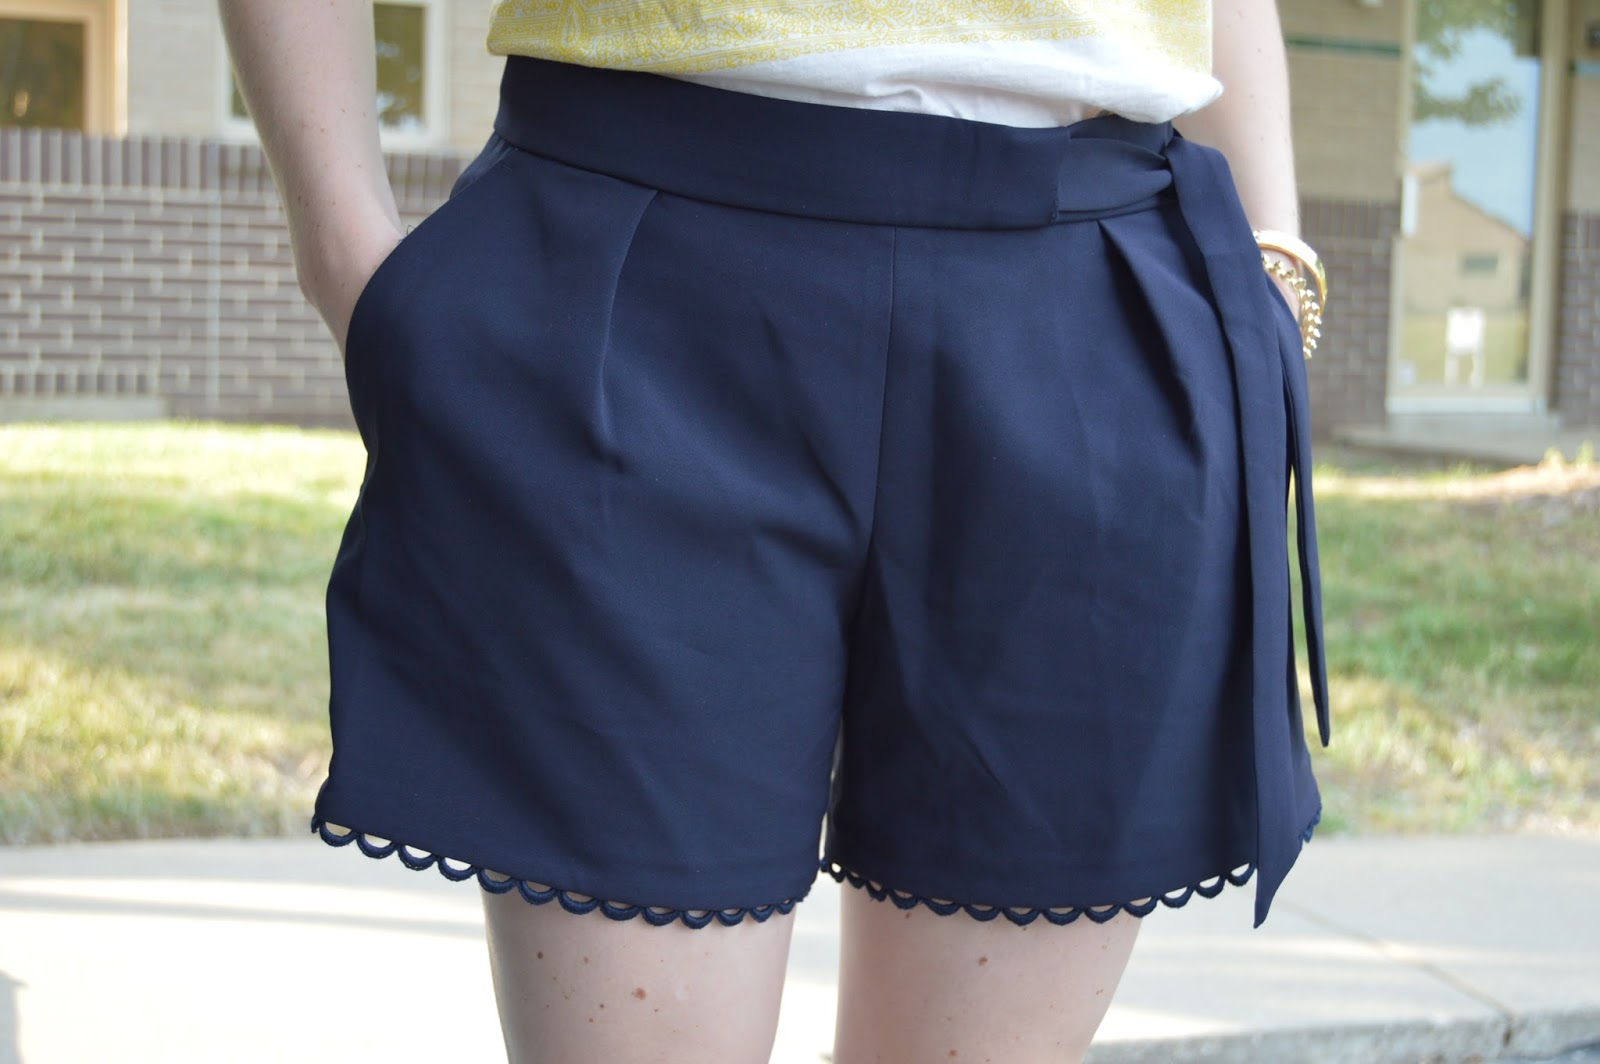 navy lace trim sorts | your life styled  | a memory of us | kansas city fashion blog | banana republic shorts | classy navy shorts | date night shorts |